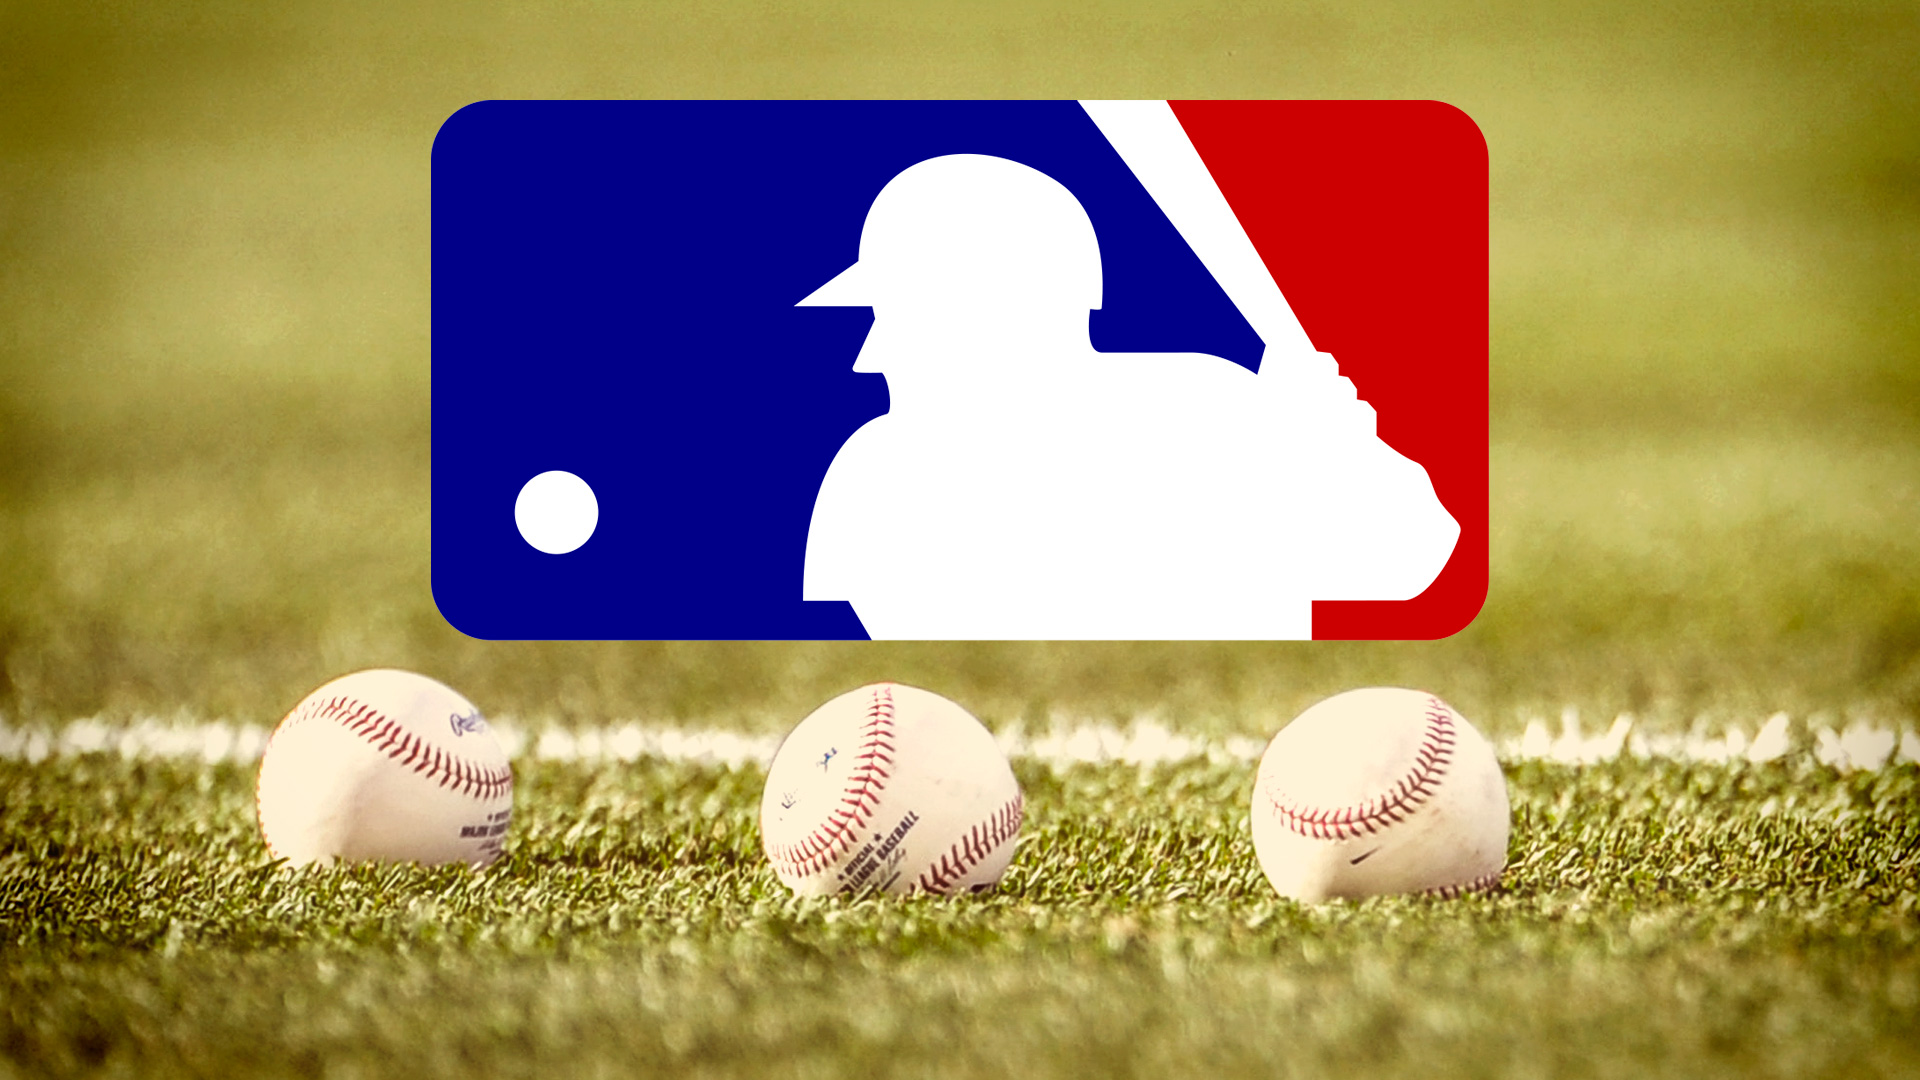 MLB Rule 5 Draft 2019: Start time, draft order, results